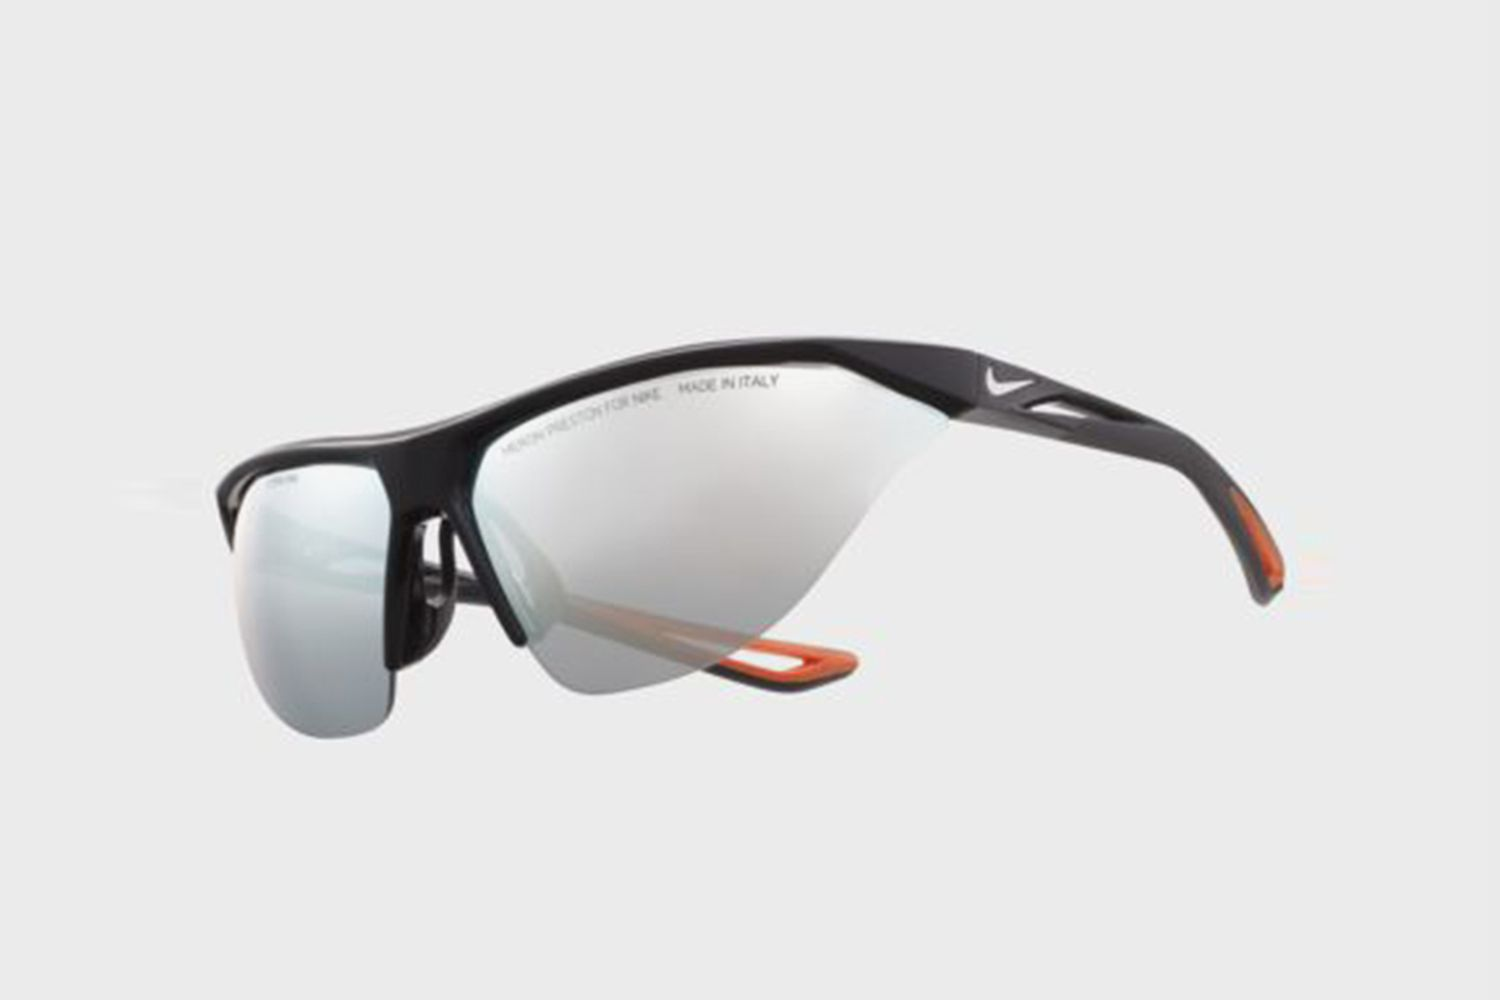 Tailwind Sunglasses